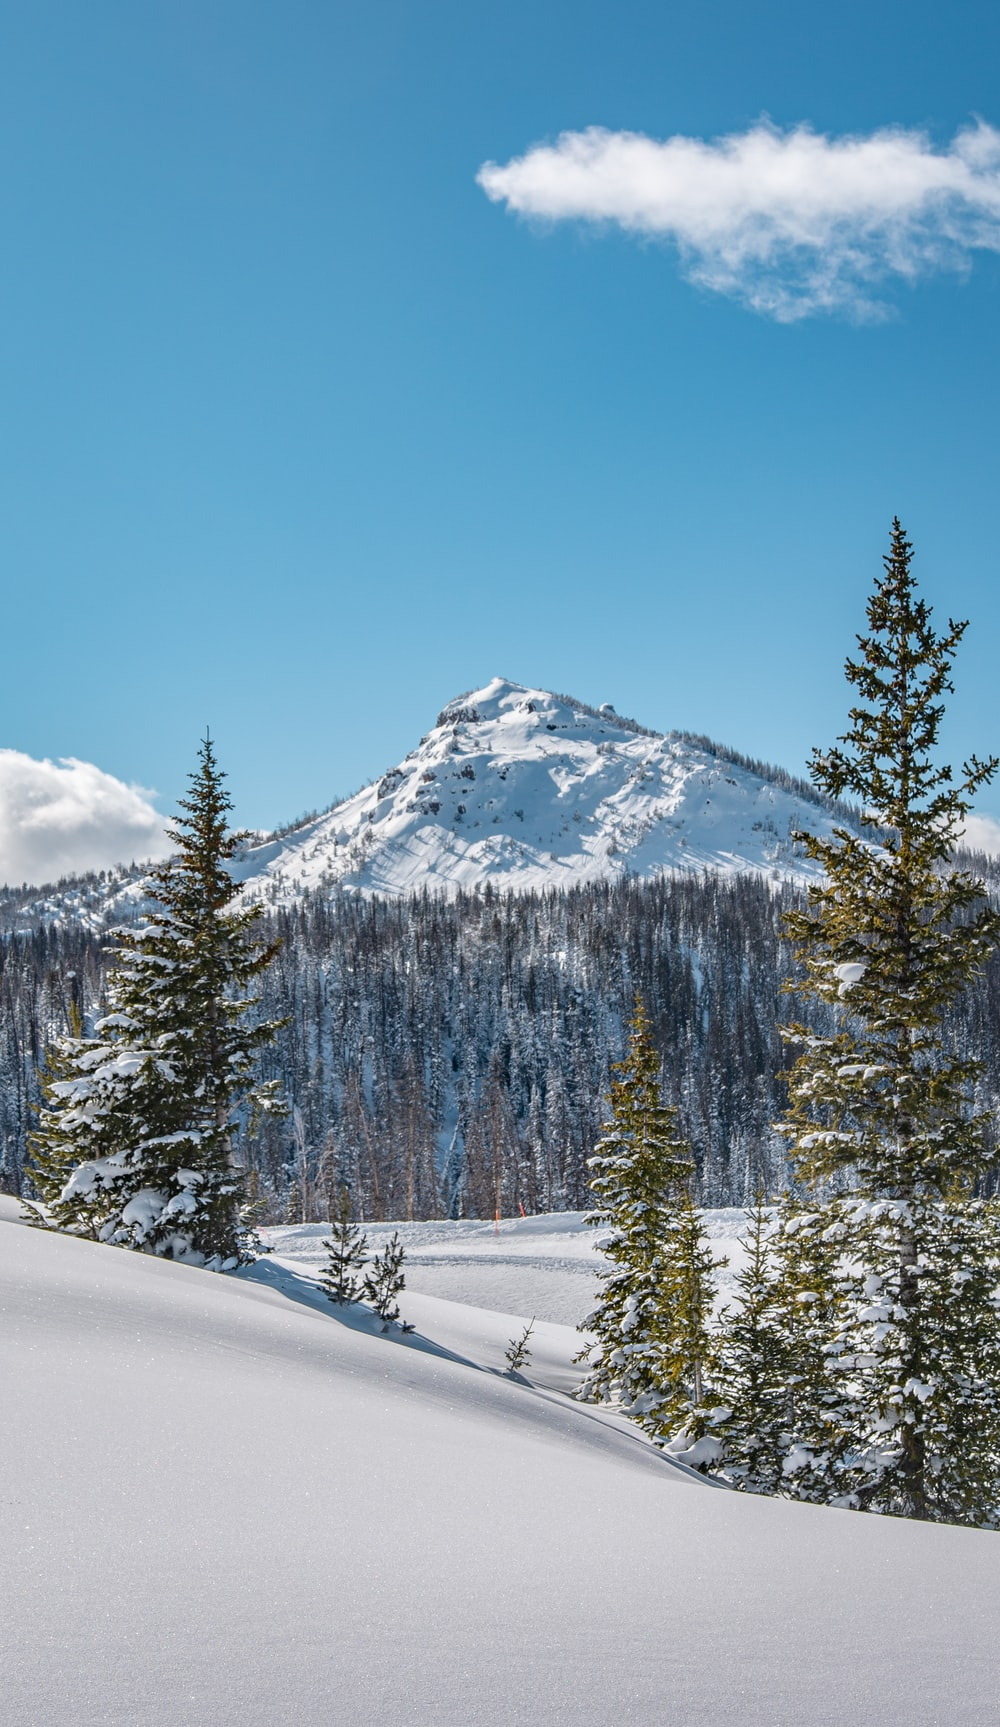 snow covered mountain and trees during daytime